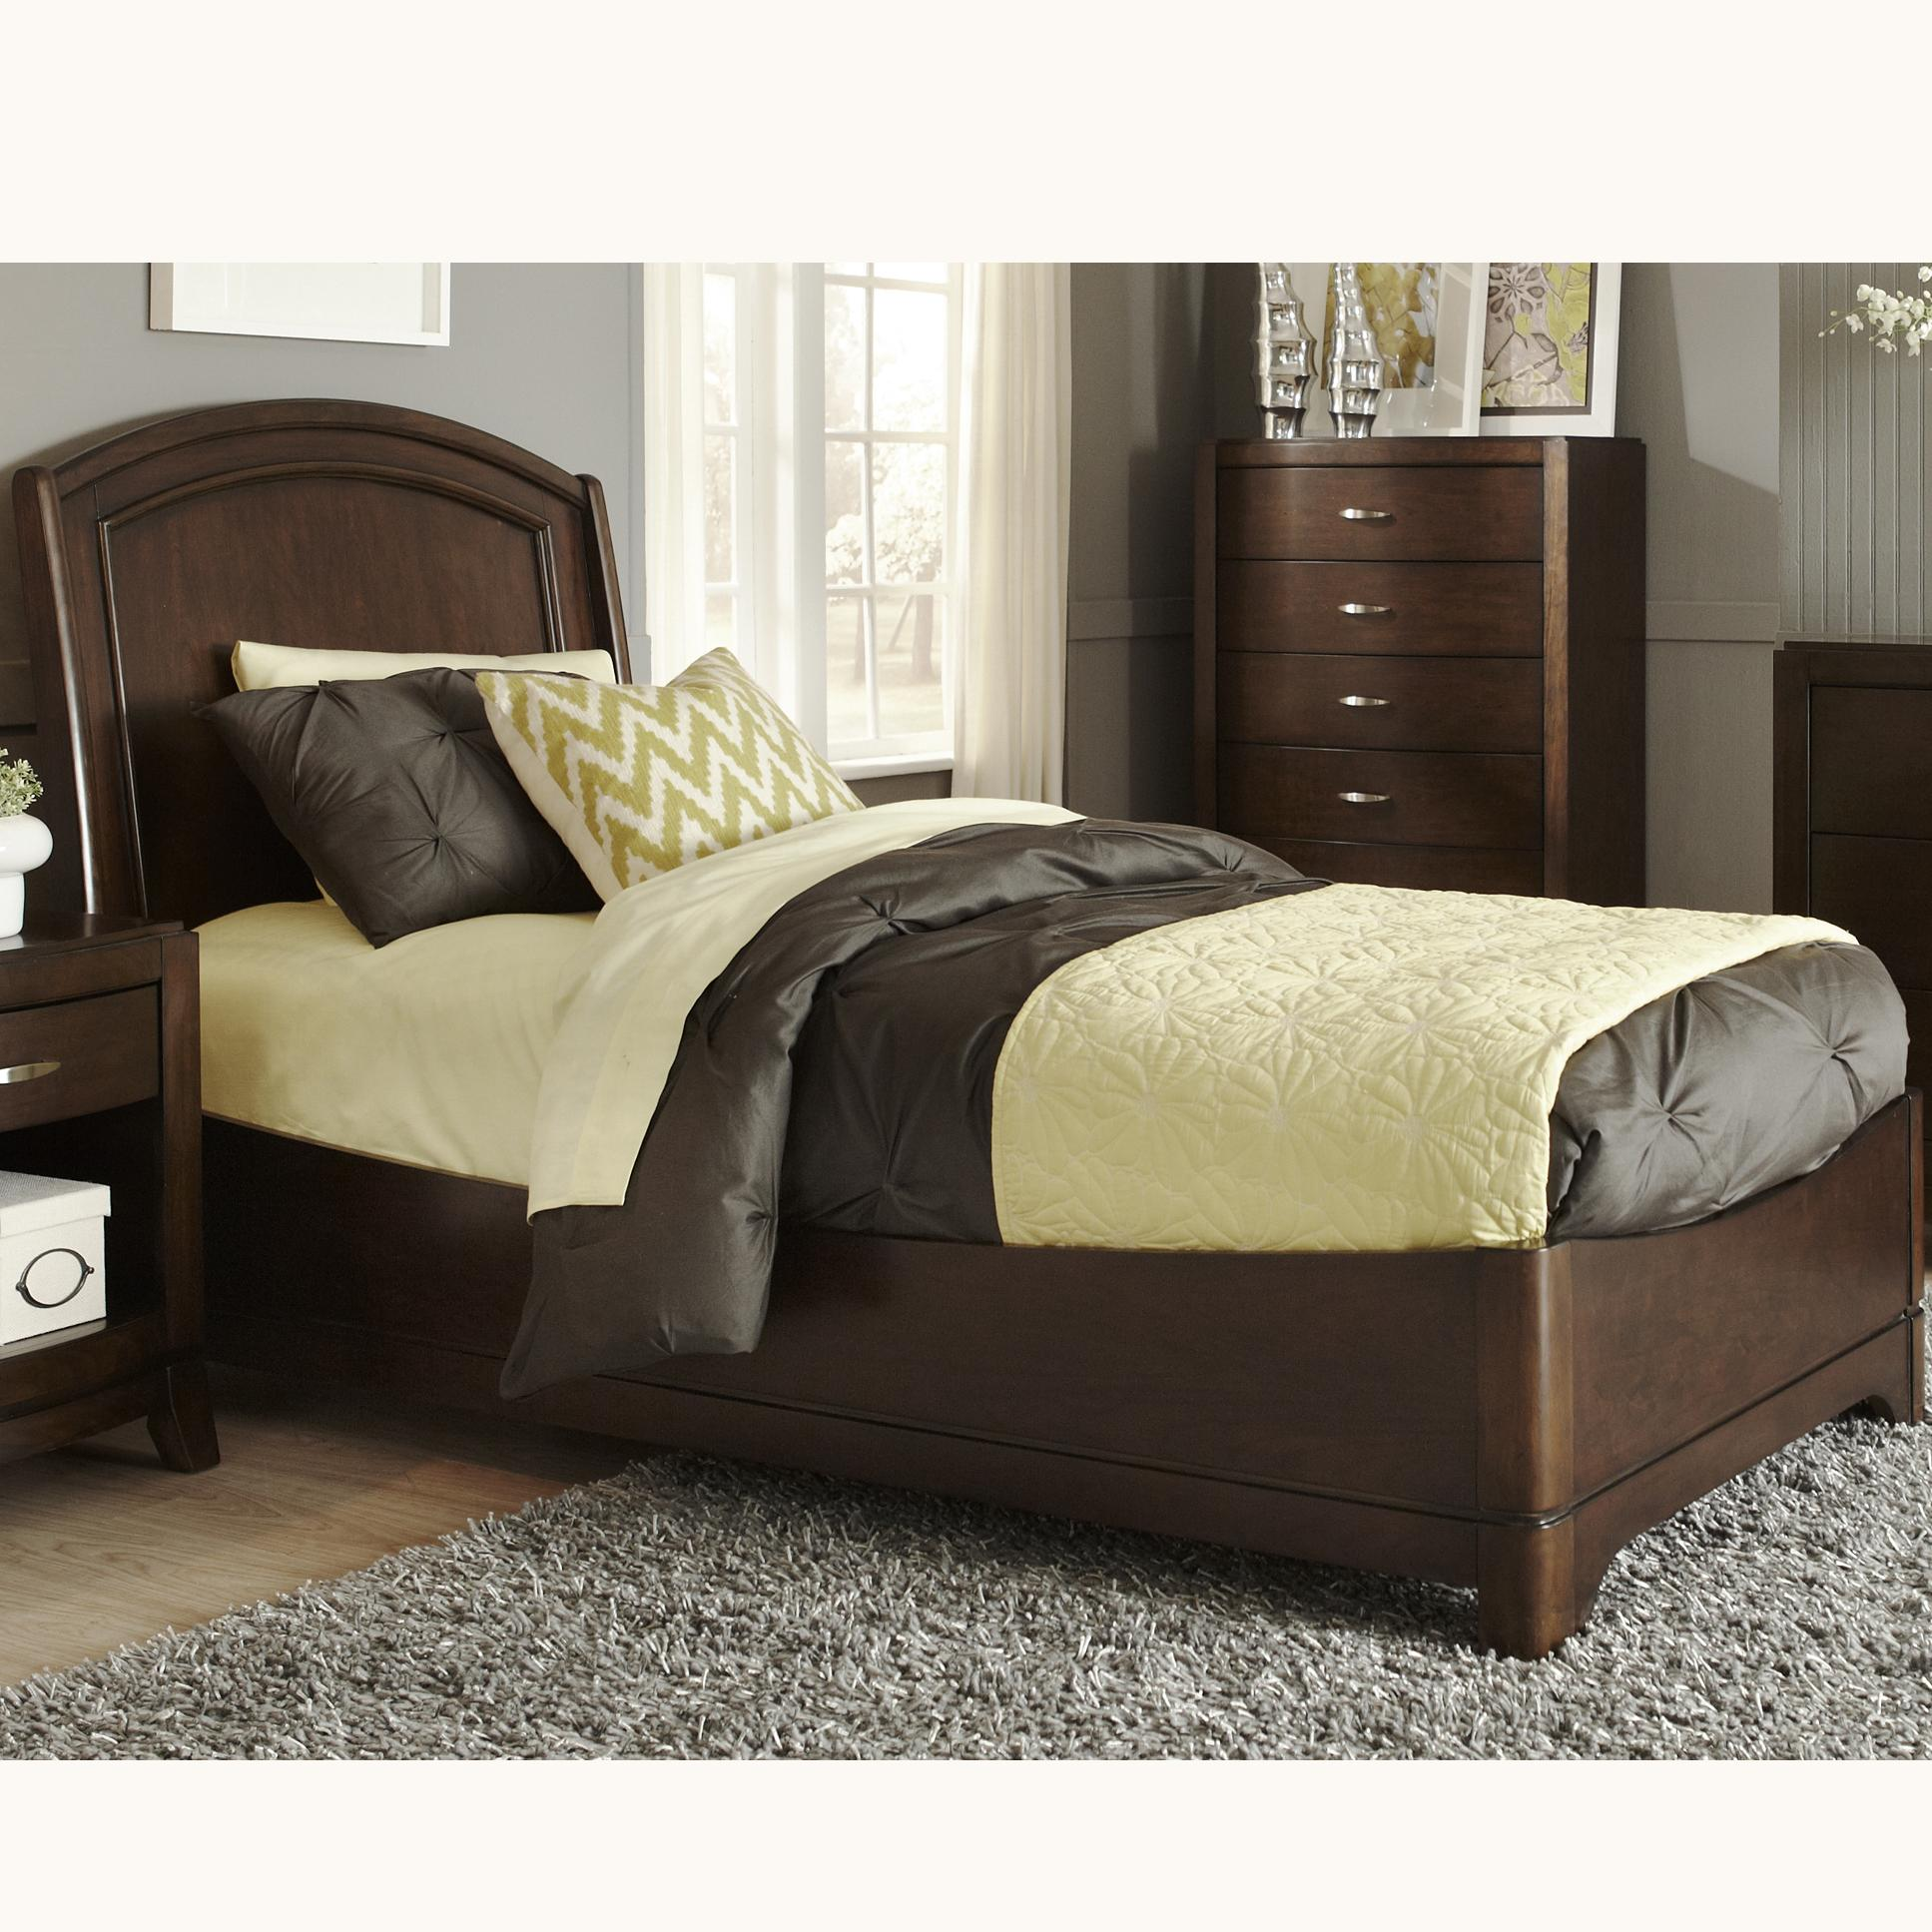 Liberty Furniture Avalon Full Platform Bed - Item Number: 505-YBR-FPL